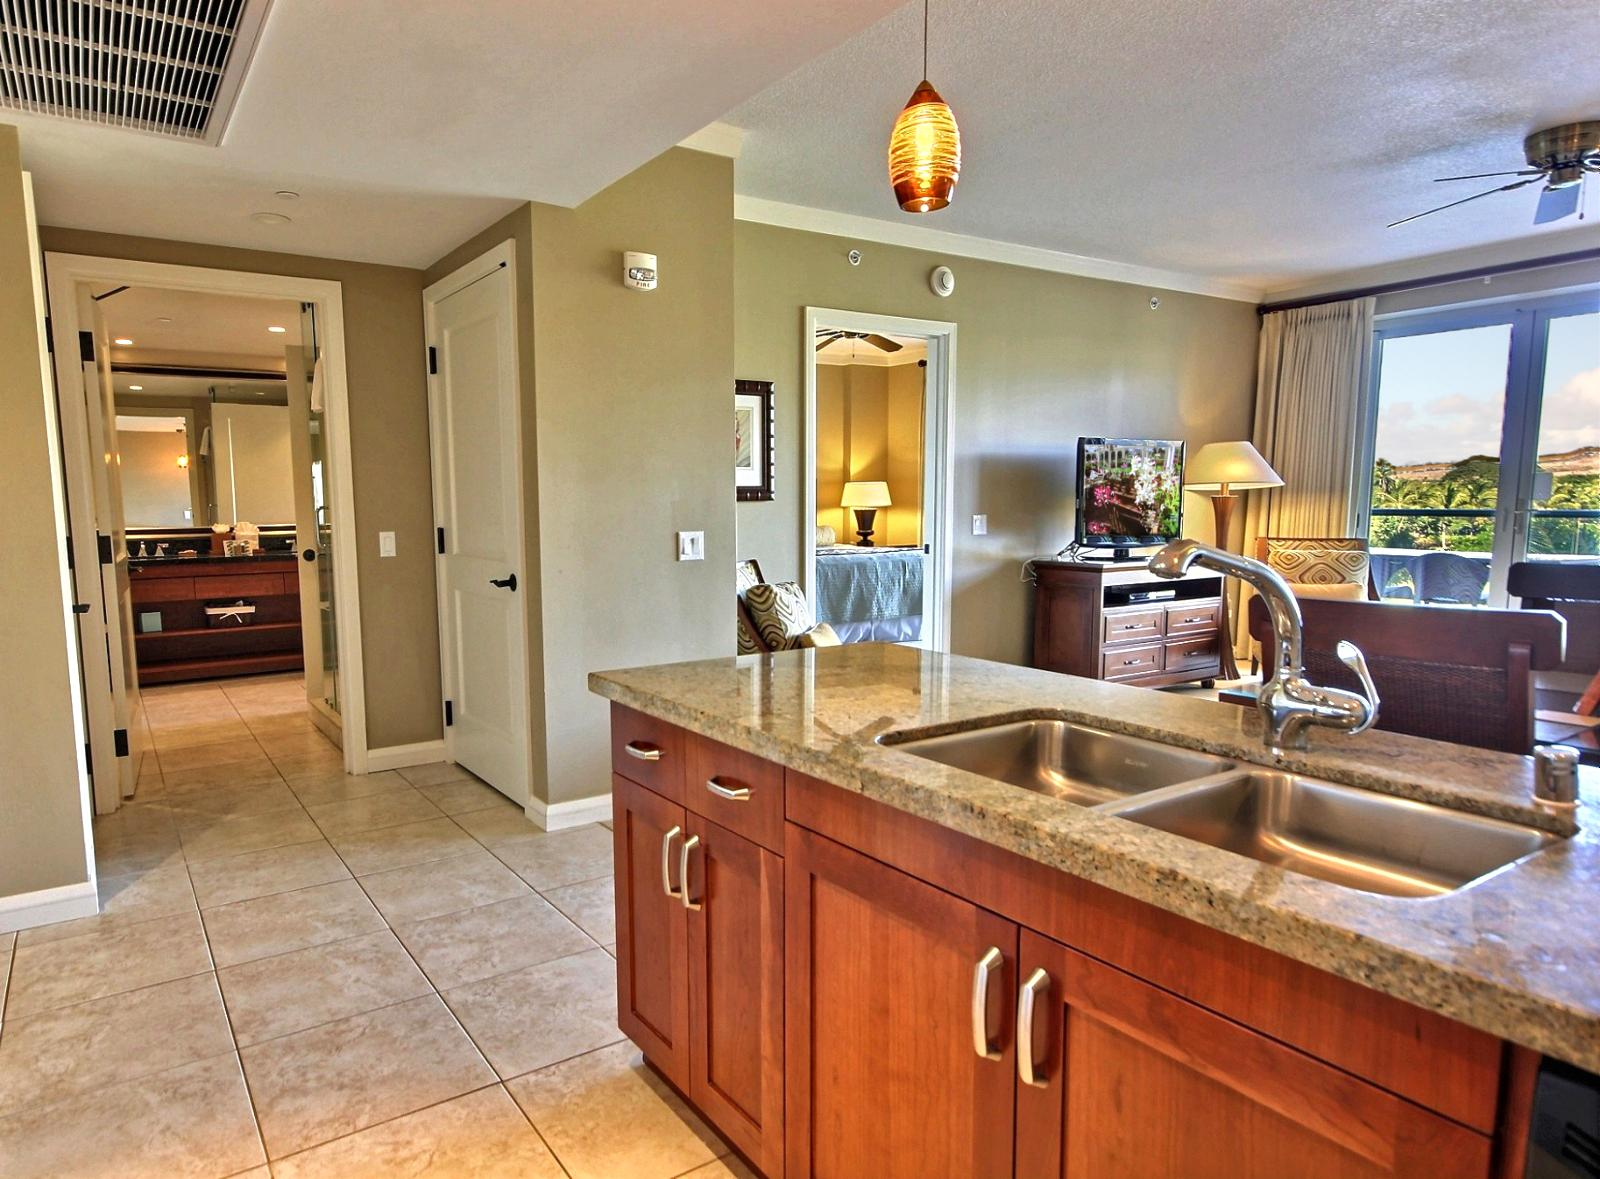 Notice the dual kitchen sinks and full size dish washer makes cleaning up easy